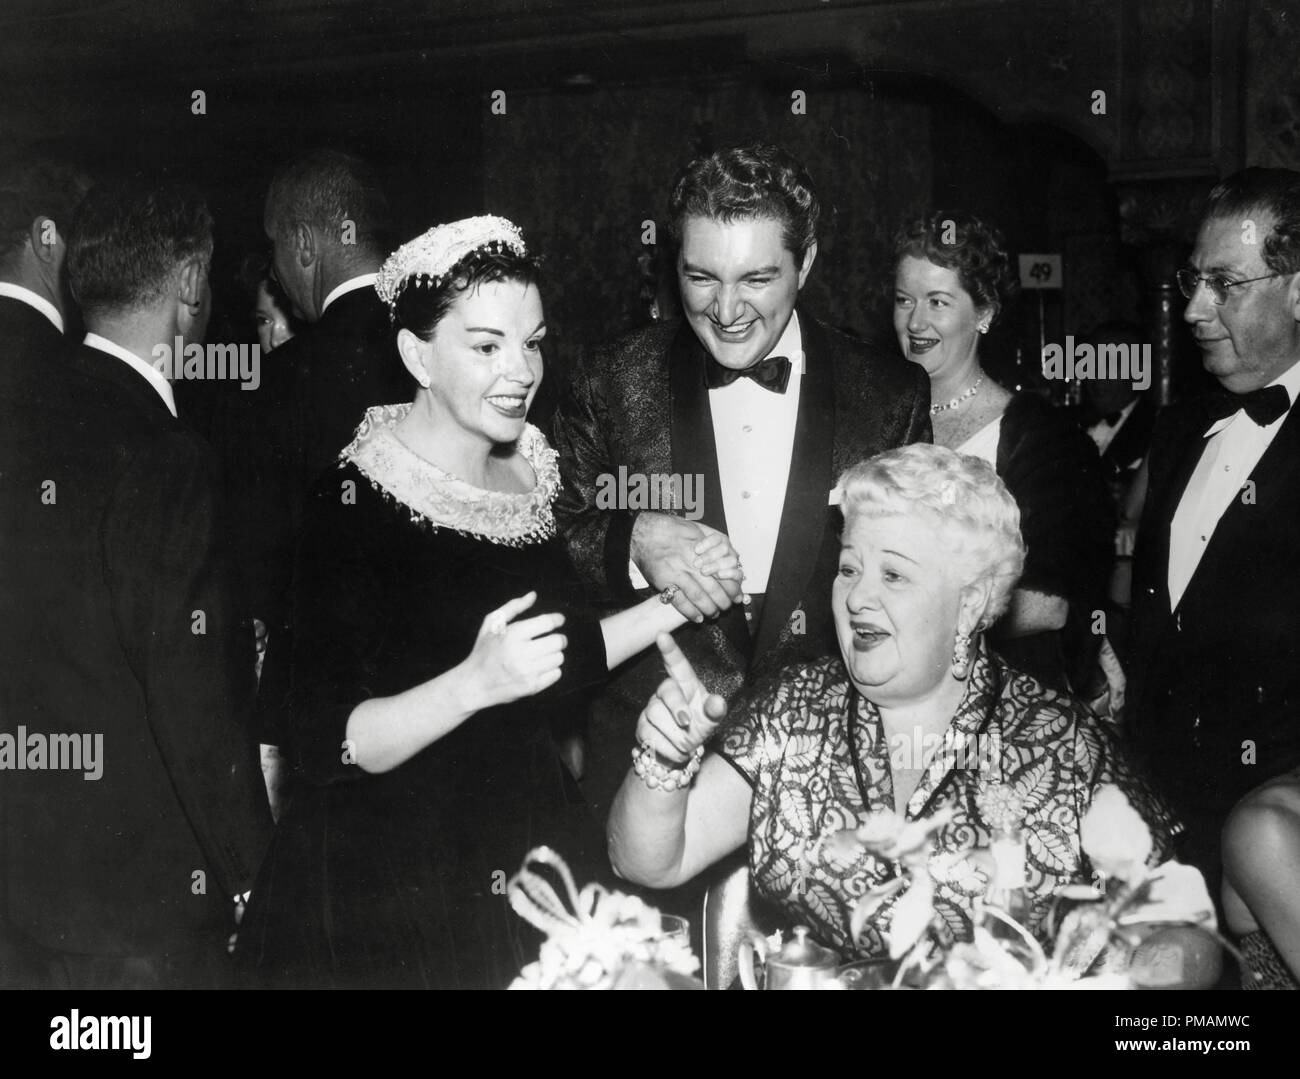 Judy Garland And Liberace At The Premiere Of A Star Is Born 1954 File Reference 33505 061tha For Editorial Use Only All Rights Reserved Stock Photo Alamy